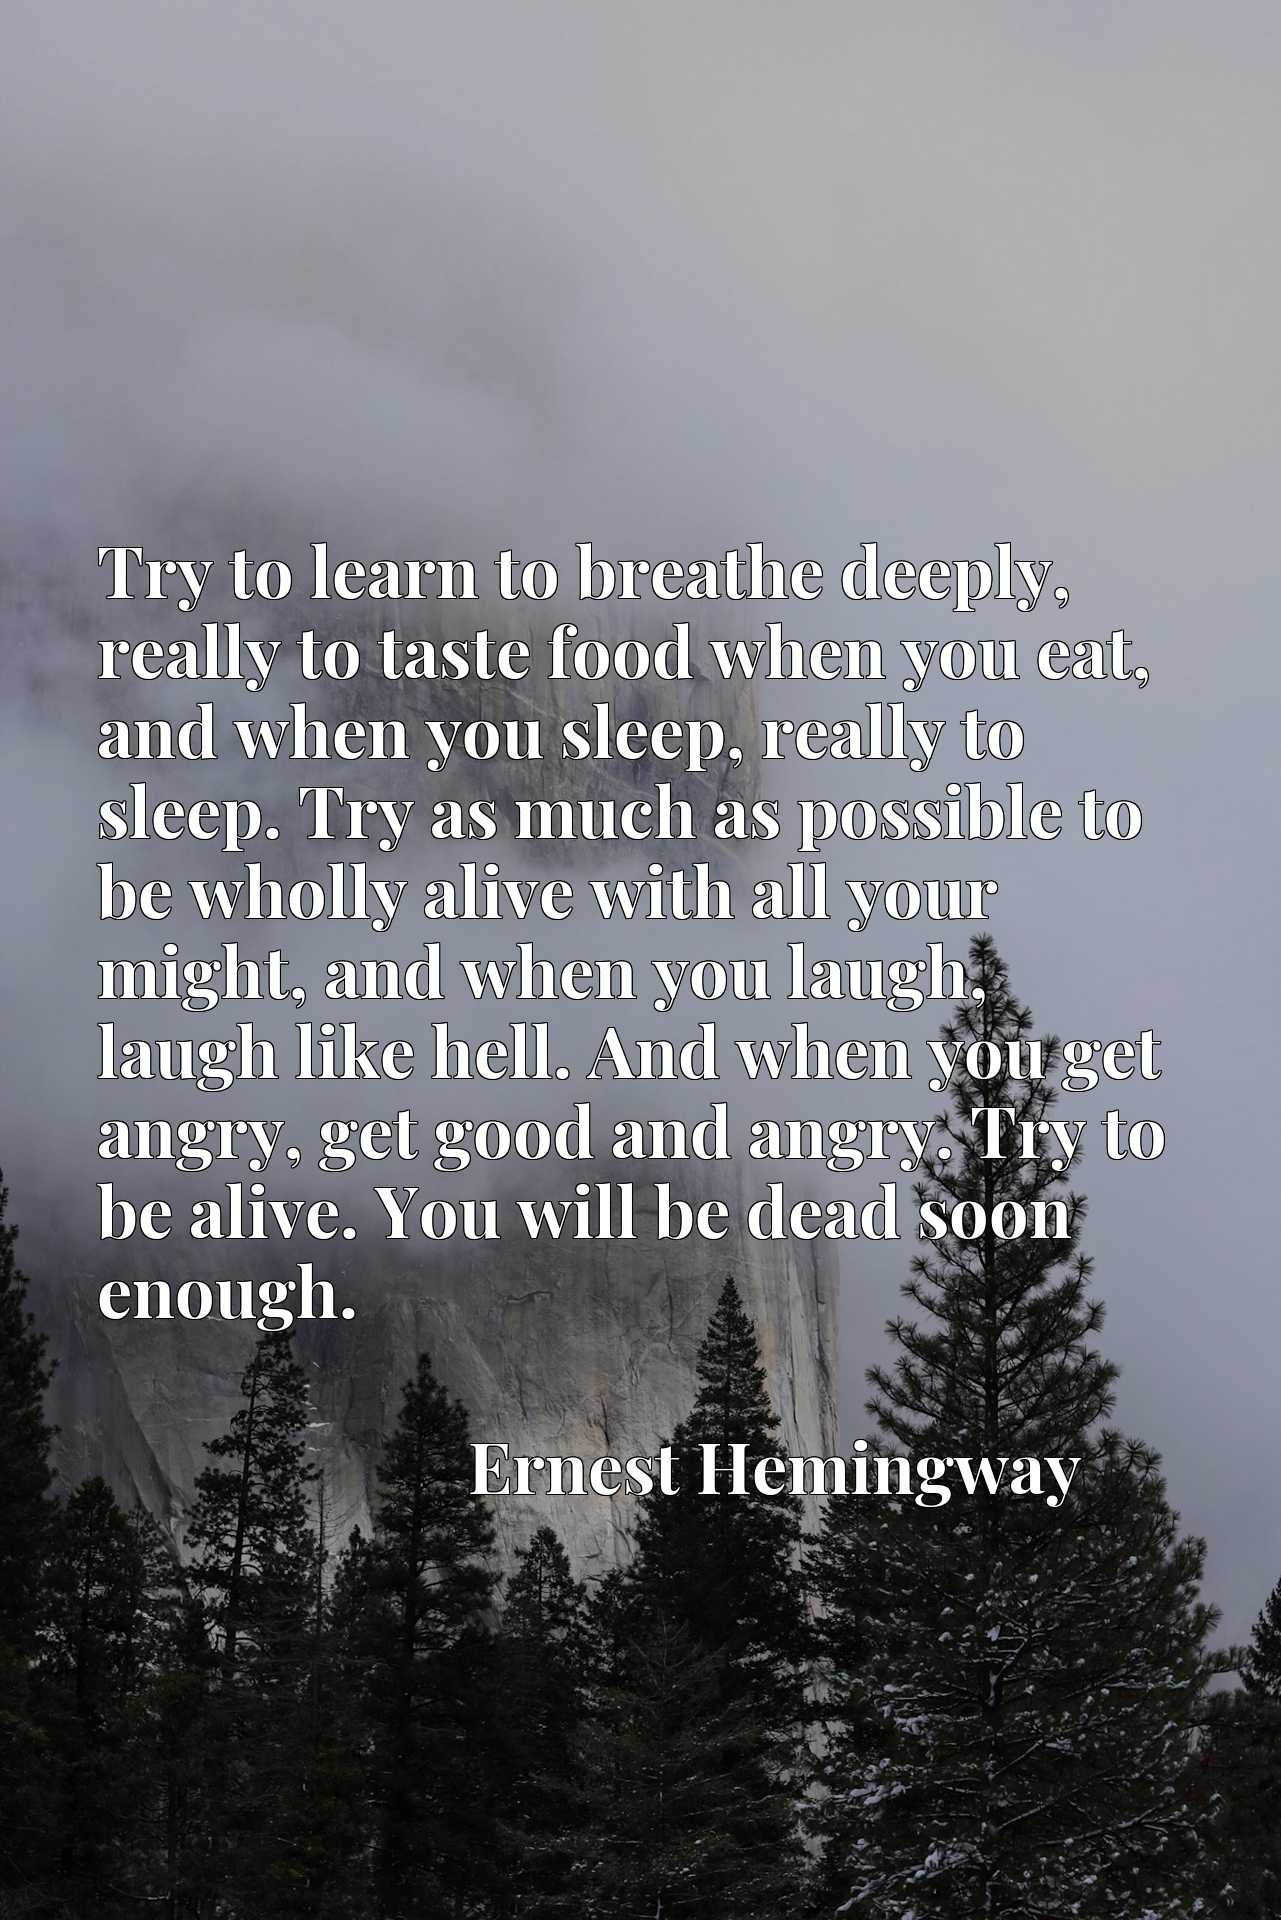 Try to learn to breathe deeply, really to taste food when you eat, and when you sleep, really to sleep. Try as much as possible to be wholly alive with all your might, and when you laugh, laugh like hell. And when you get angry, get good and angry. Try to be alive. You will be dead soon enough.